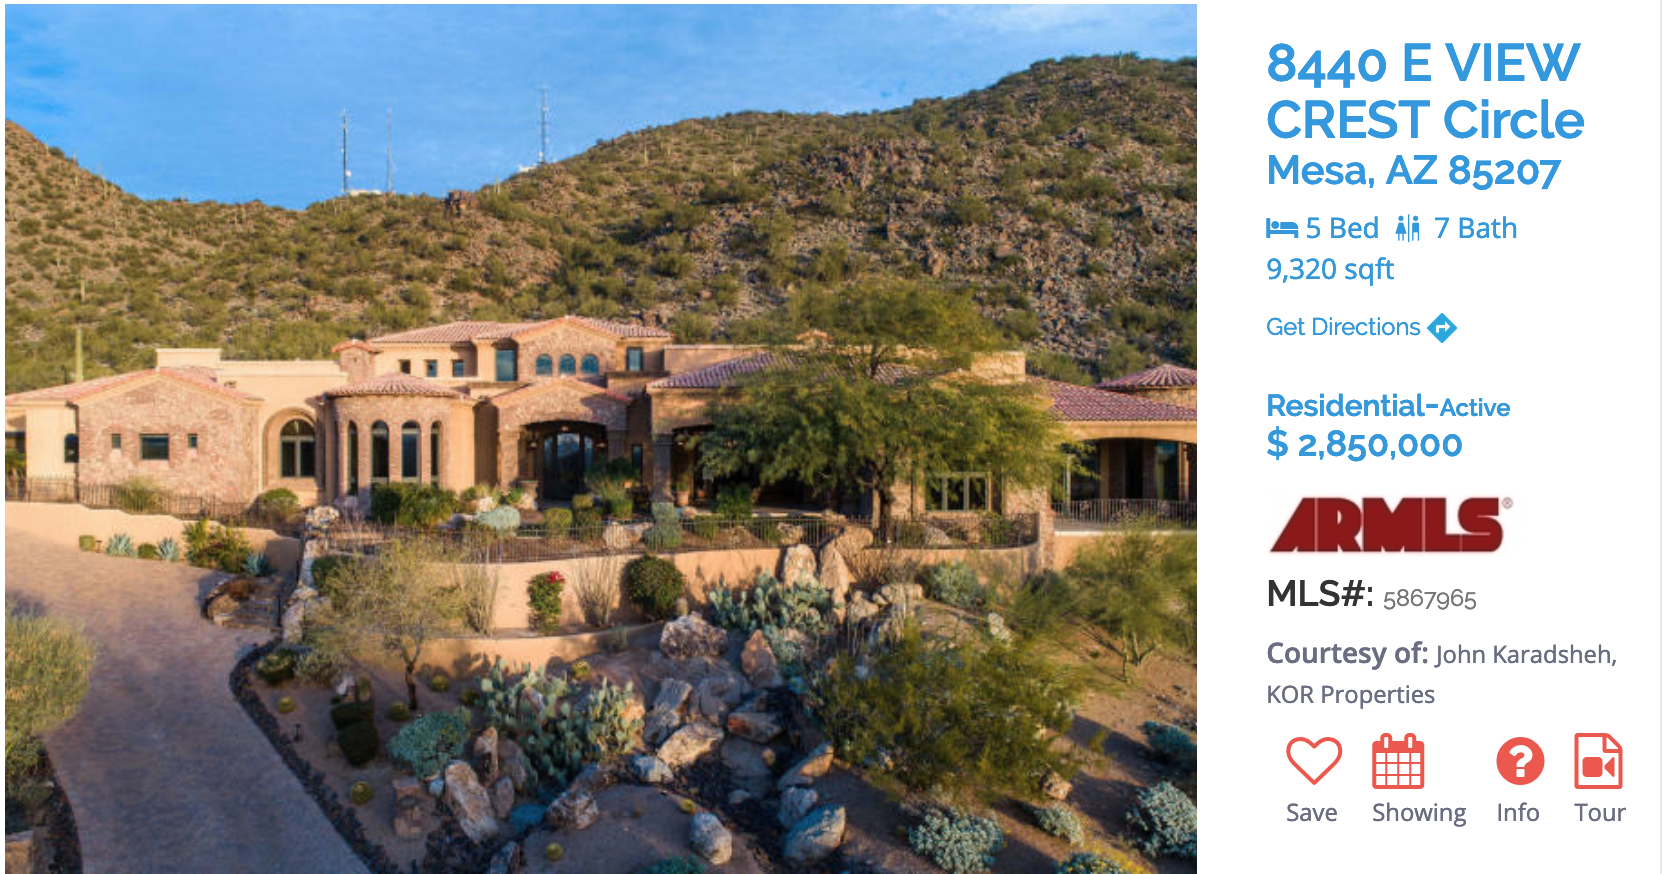 FEATURED MESA HOME